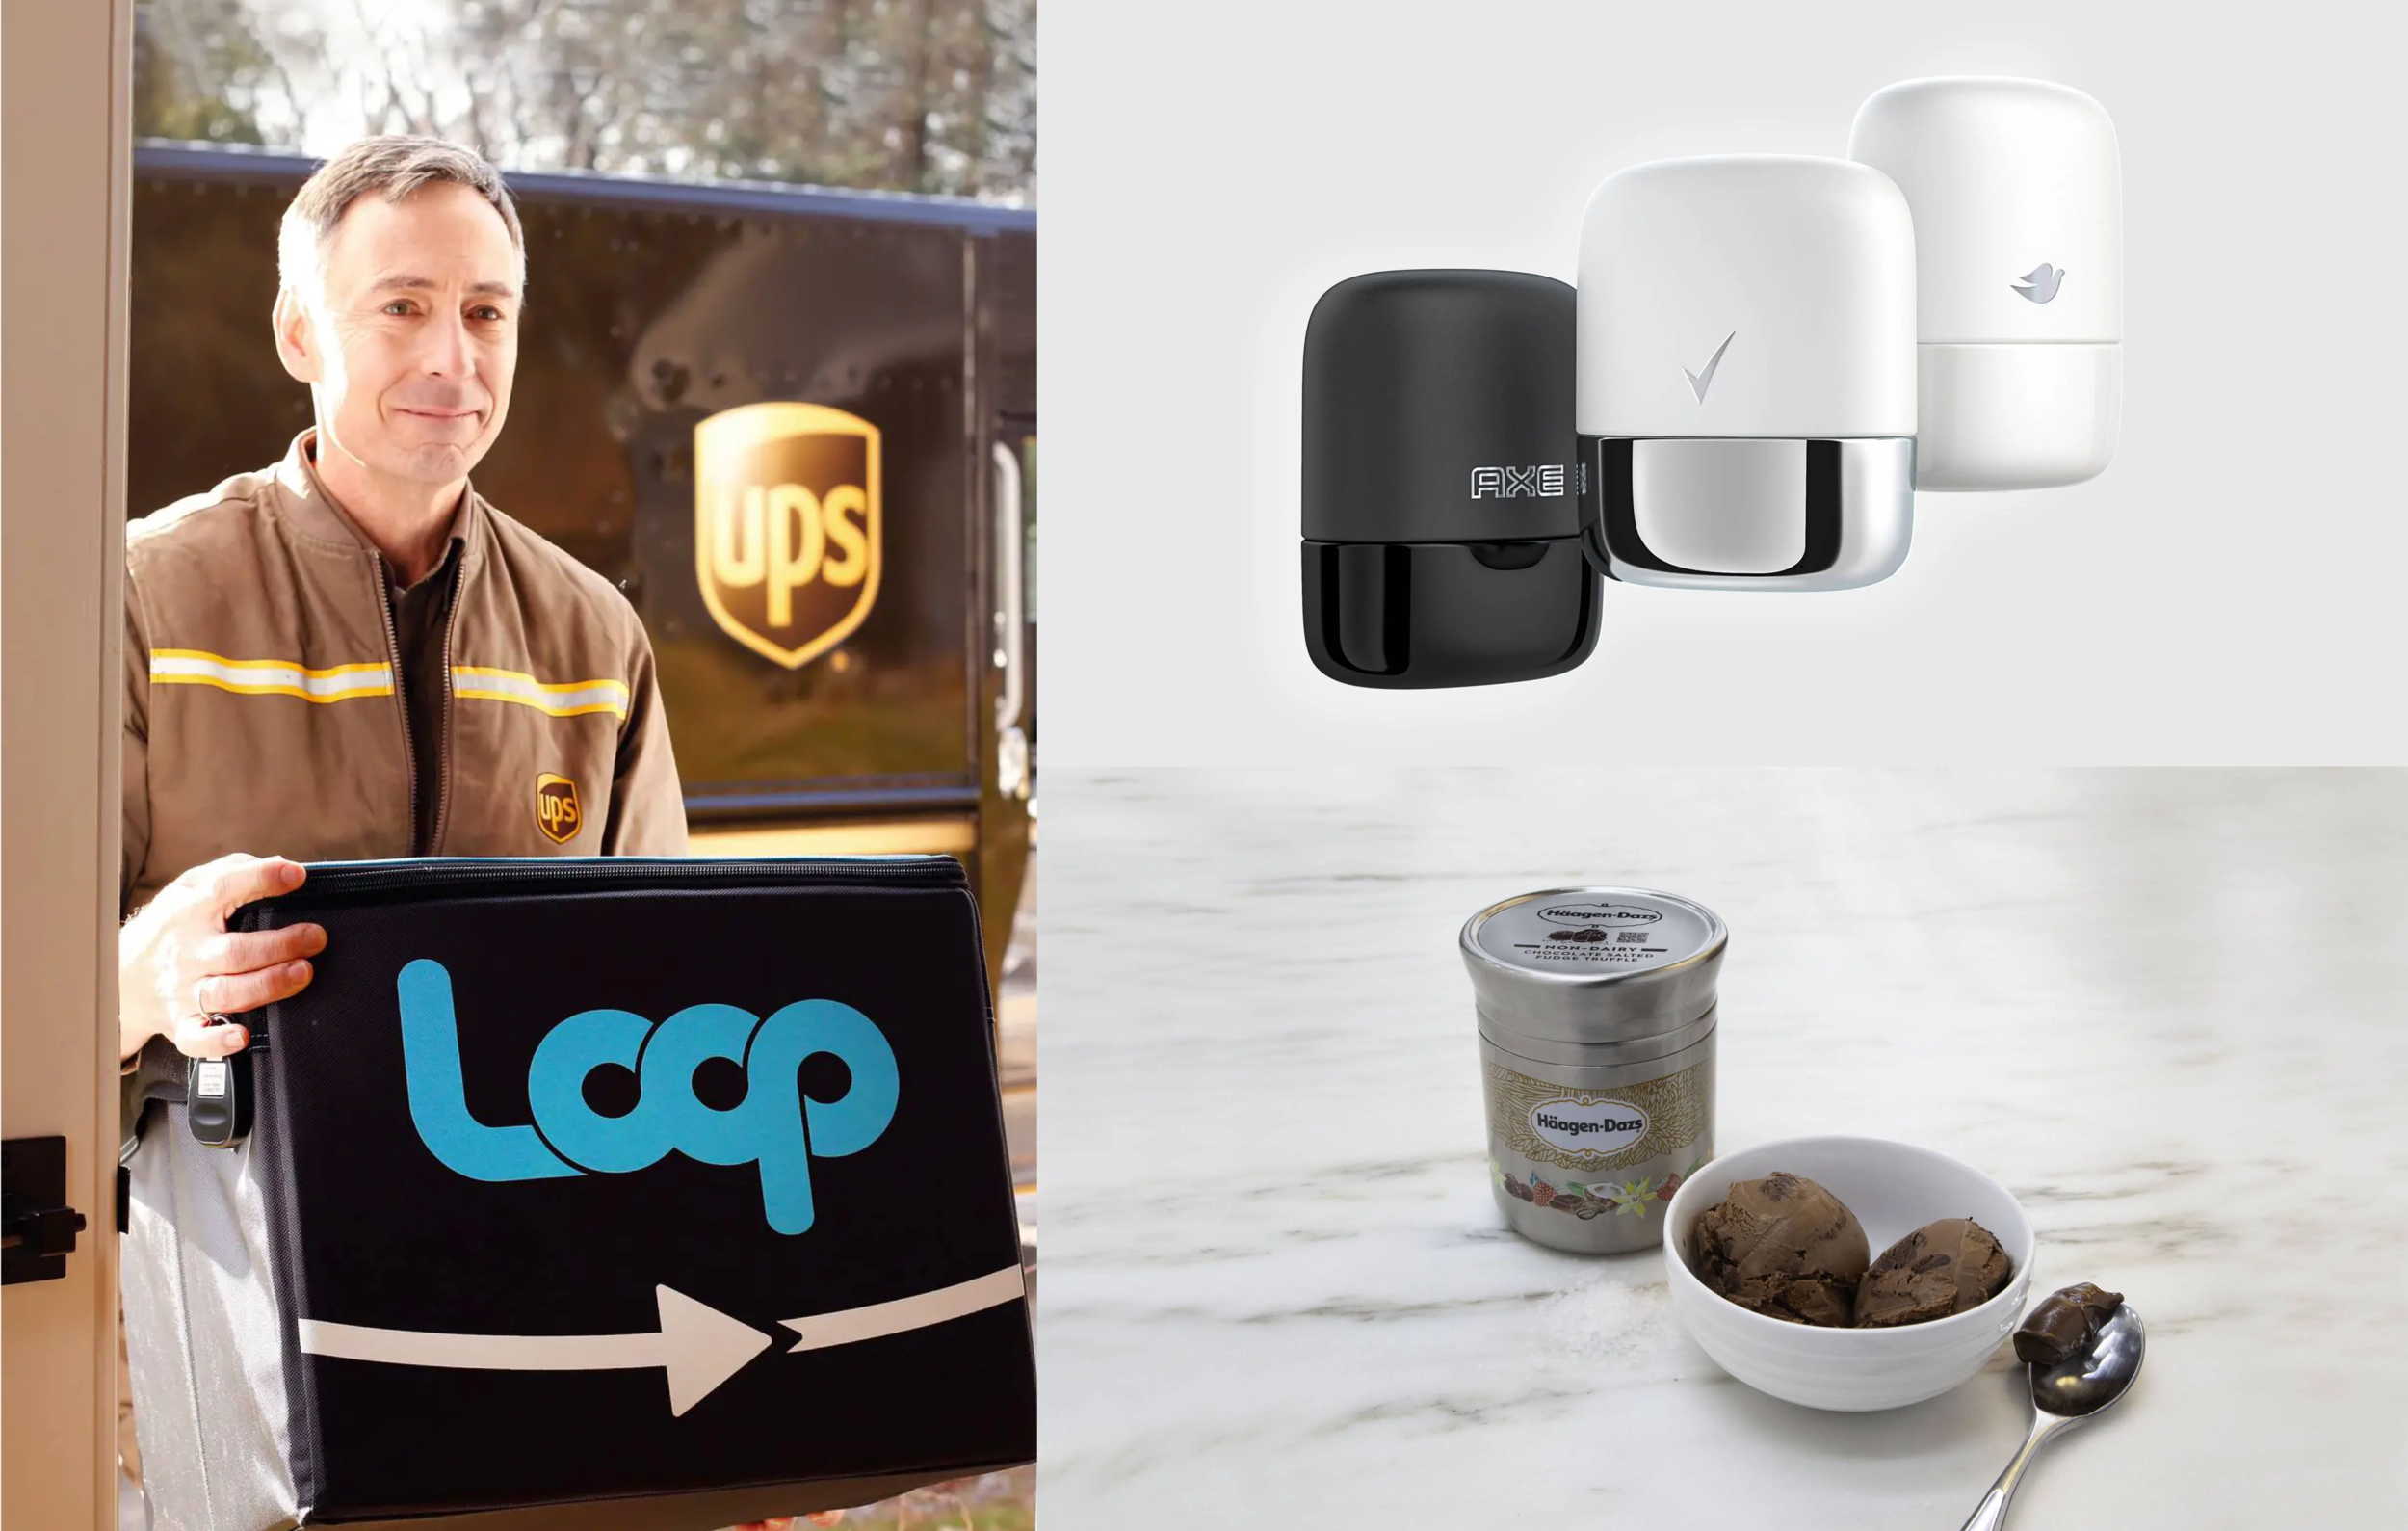 Loop Store - Shop everyday items in reusable packaging